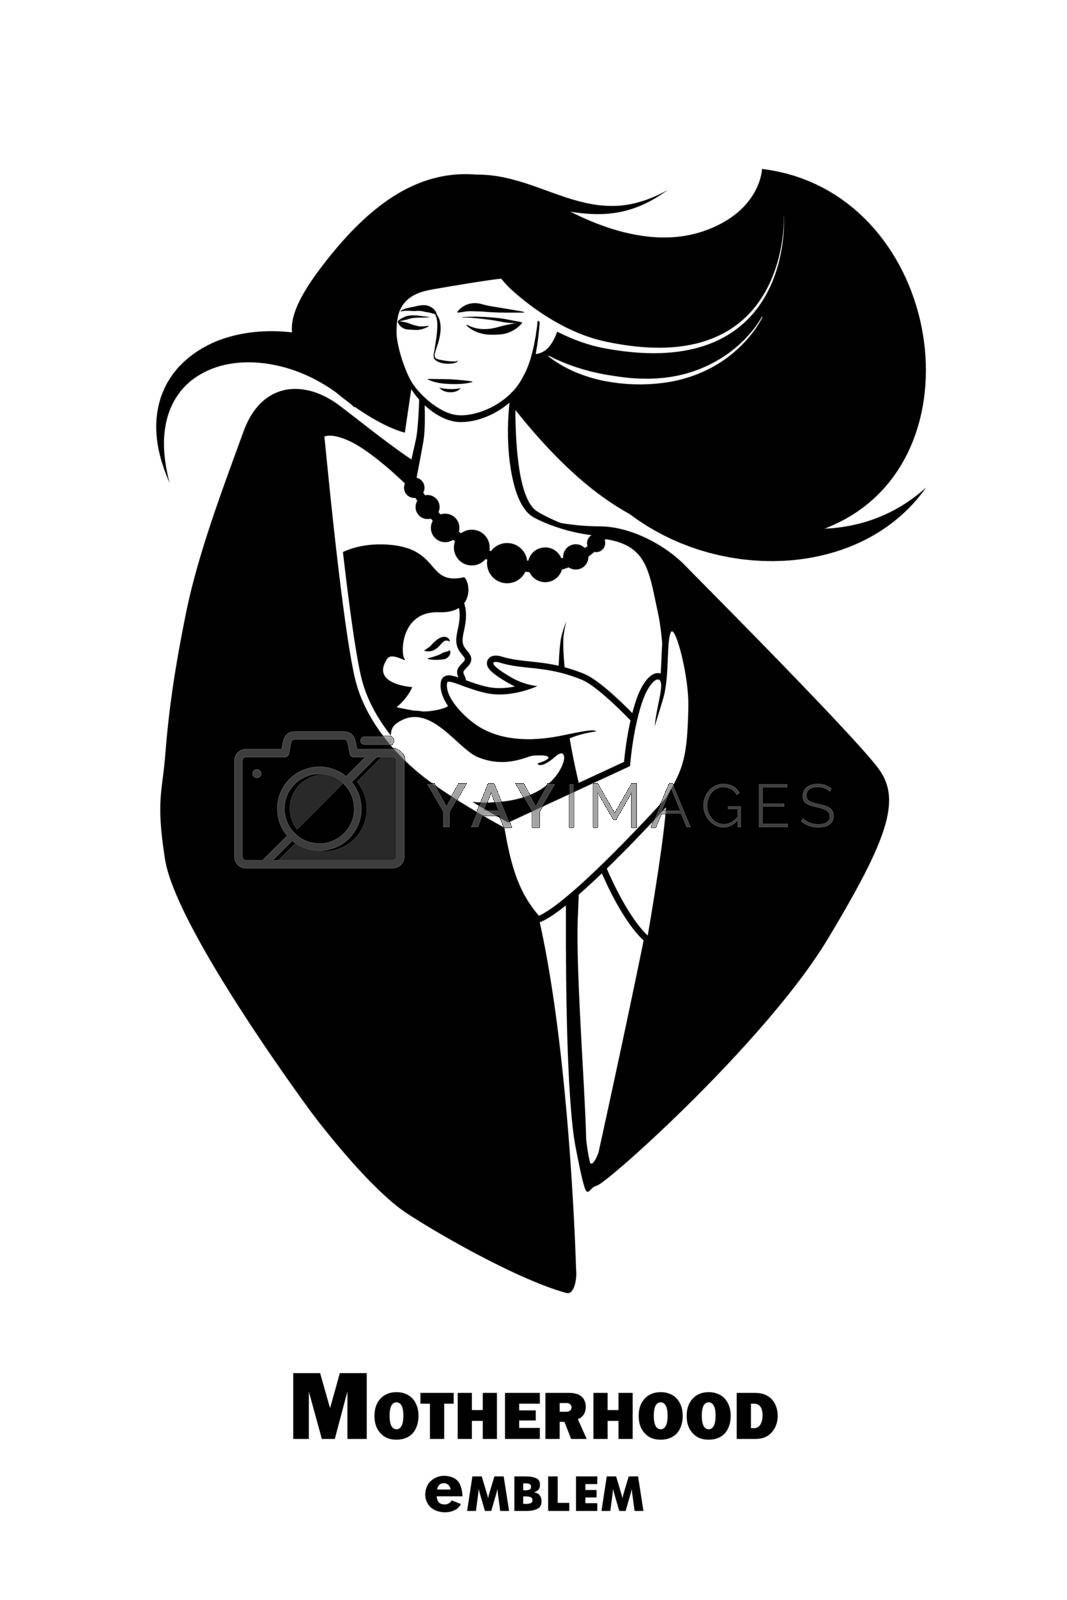 Emblem or simbol of mother and newborn baby. Mother holding child in arms and breastfeeding her. Vector vertical illustration with concept for family, motherhood, maternity, childbearing, mother's day, love and care. Eps10.